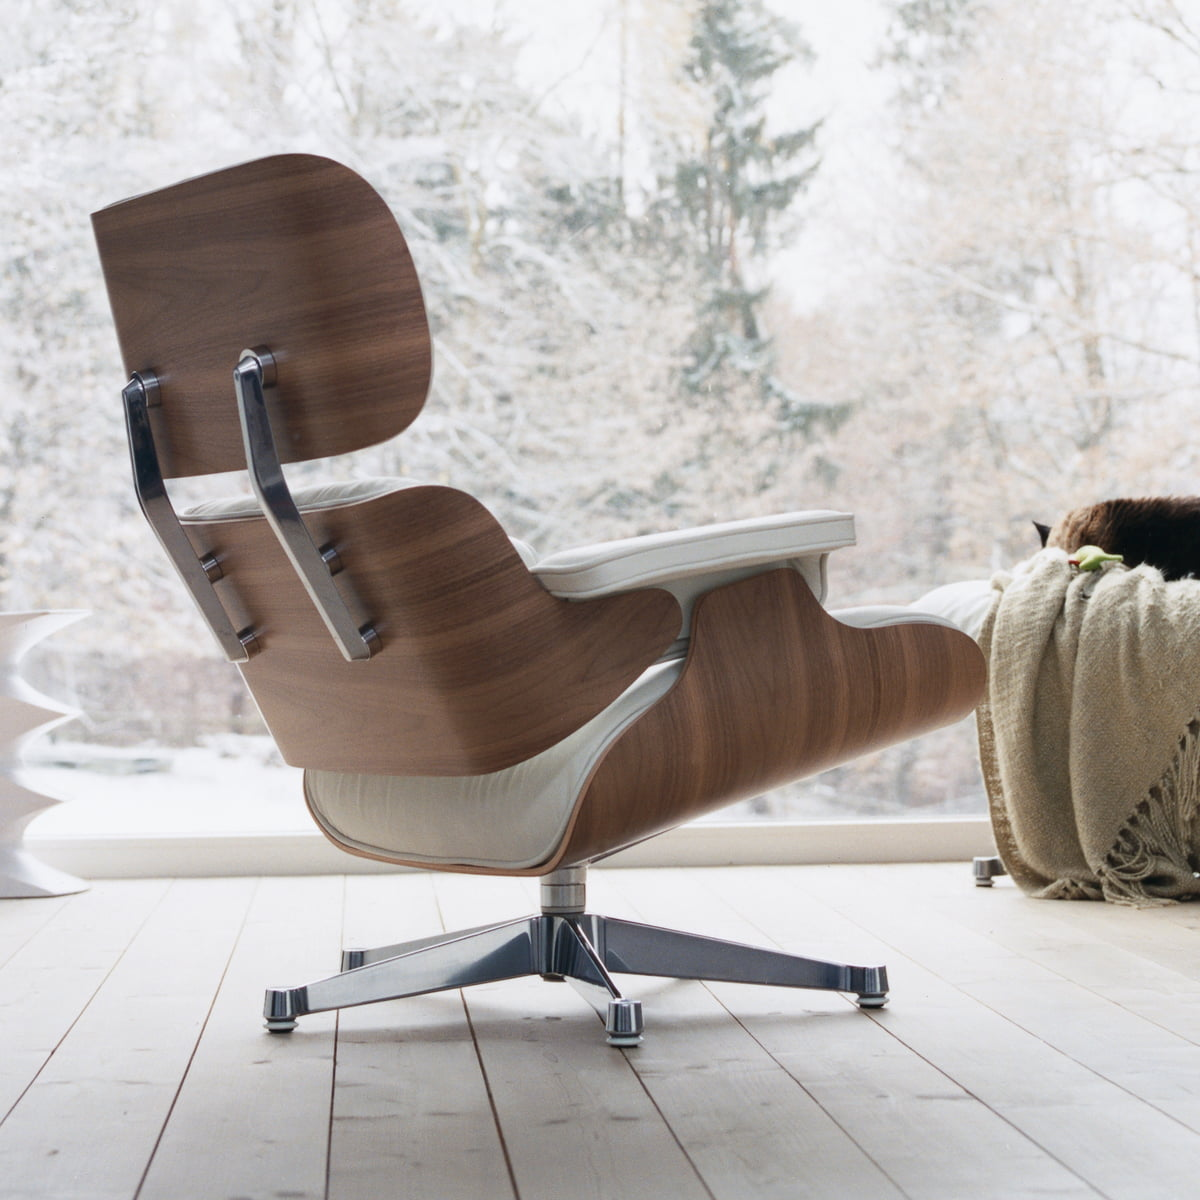 Superbe Vitra Chair With Premium Leather And Comfortable Padding